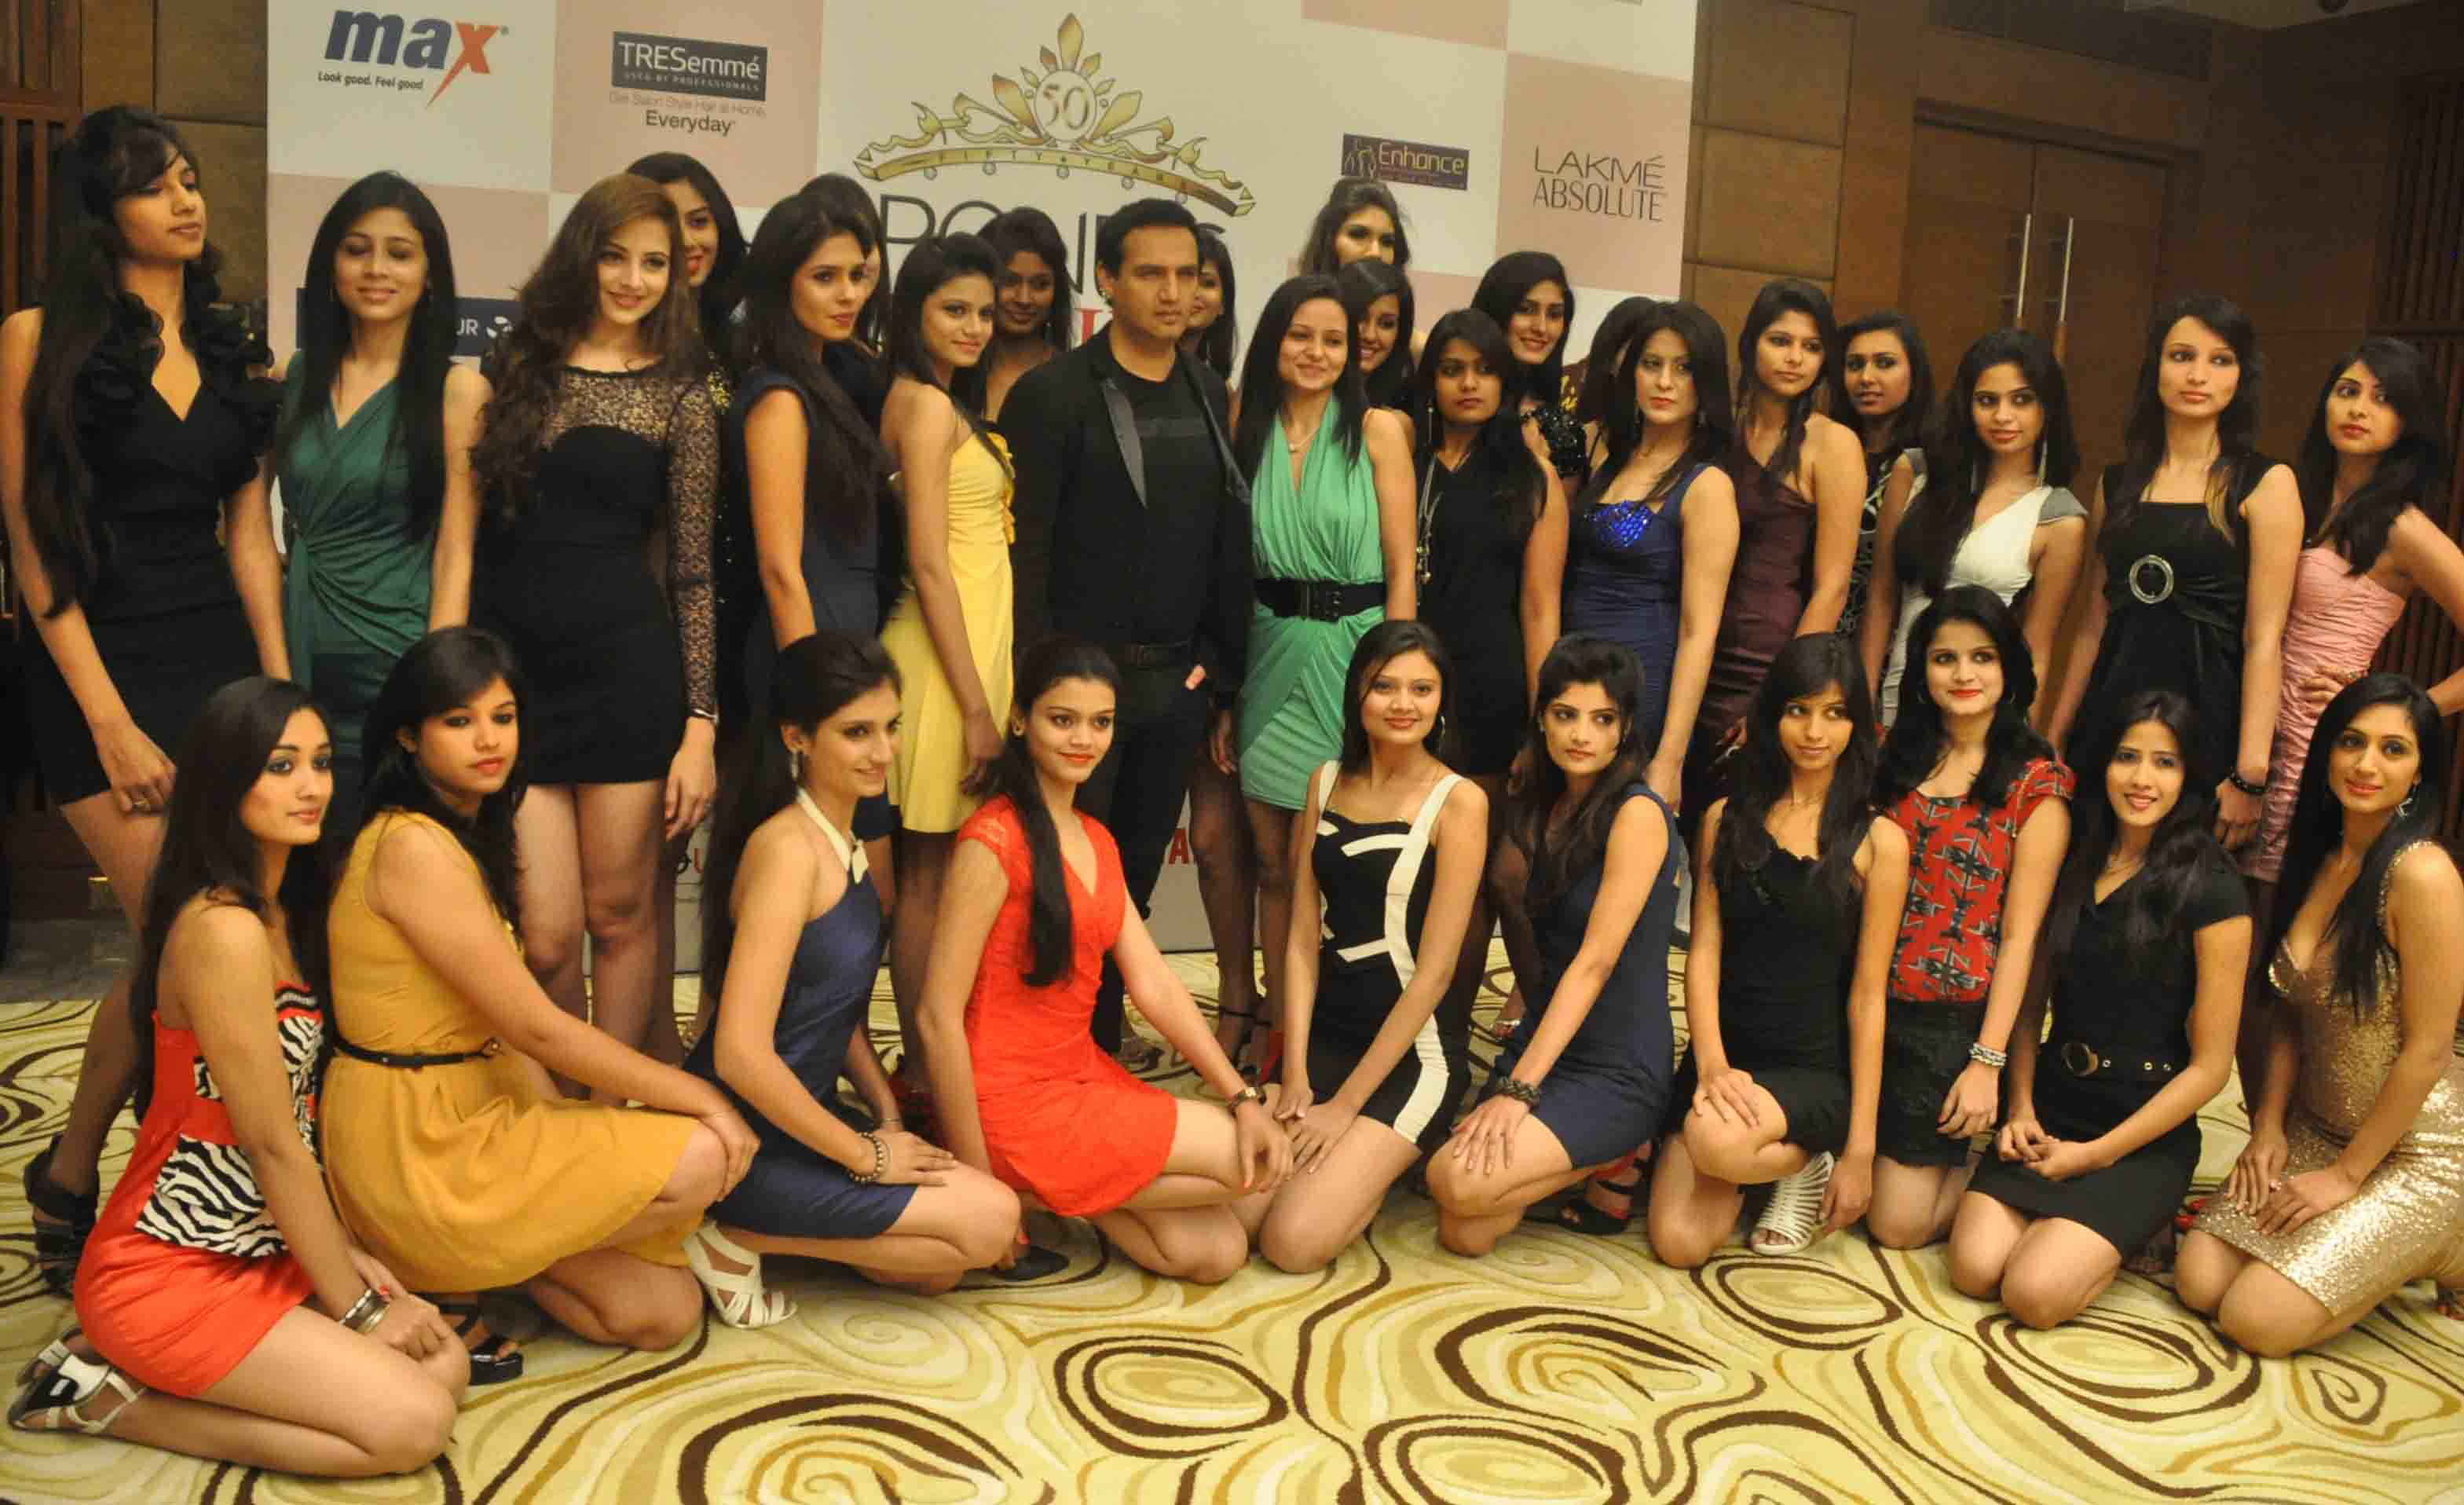 Pond's Femina Miss India 2013 witnessed an enthusiastic response